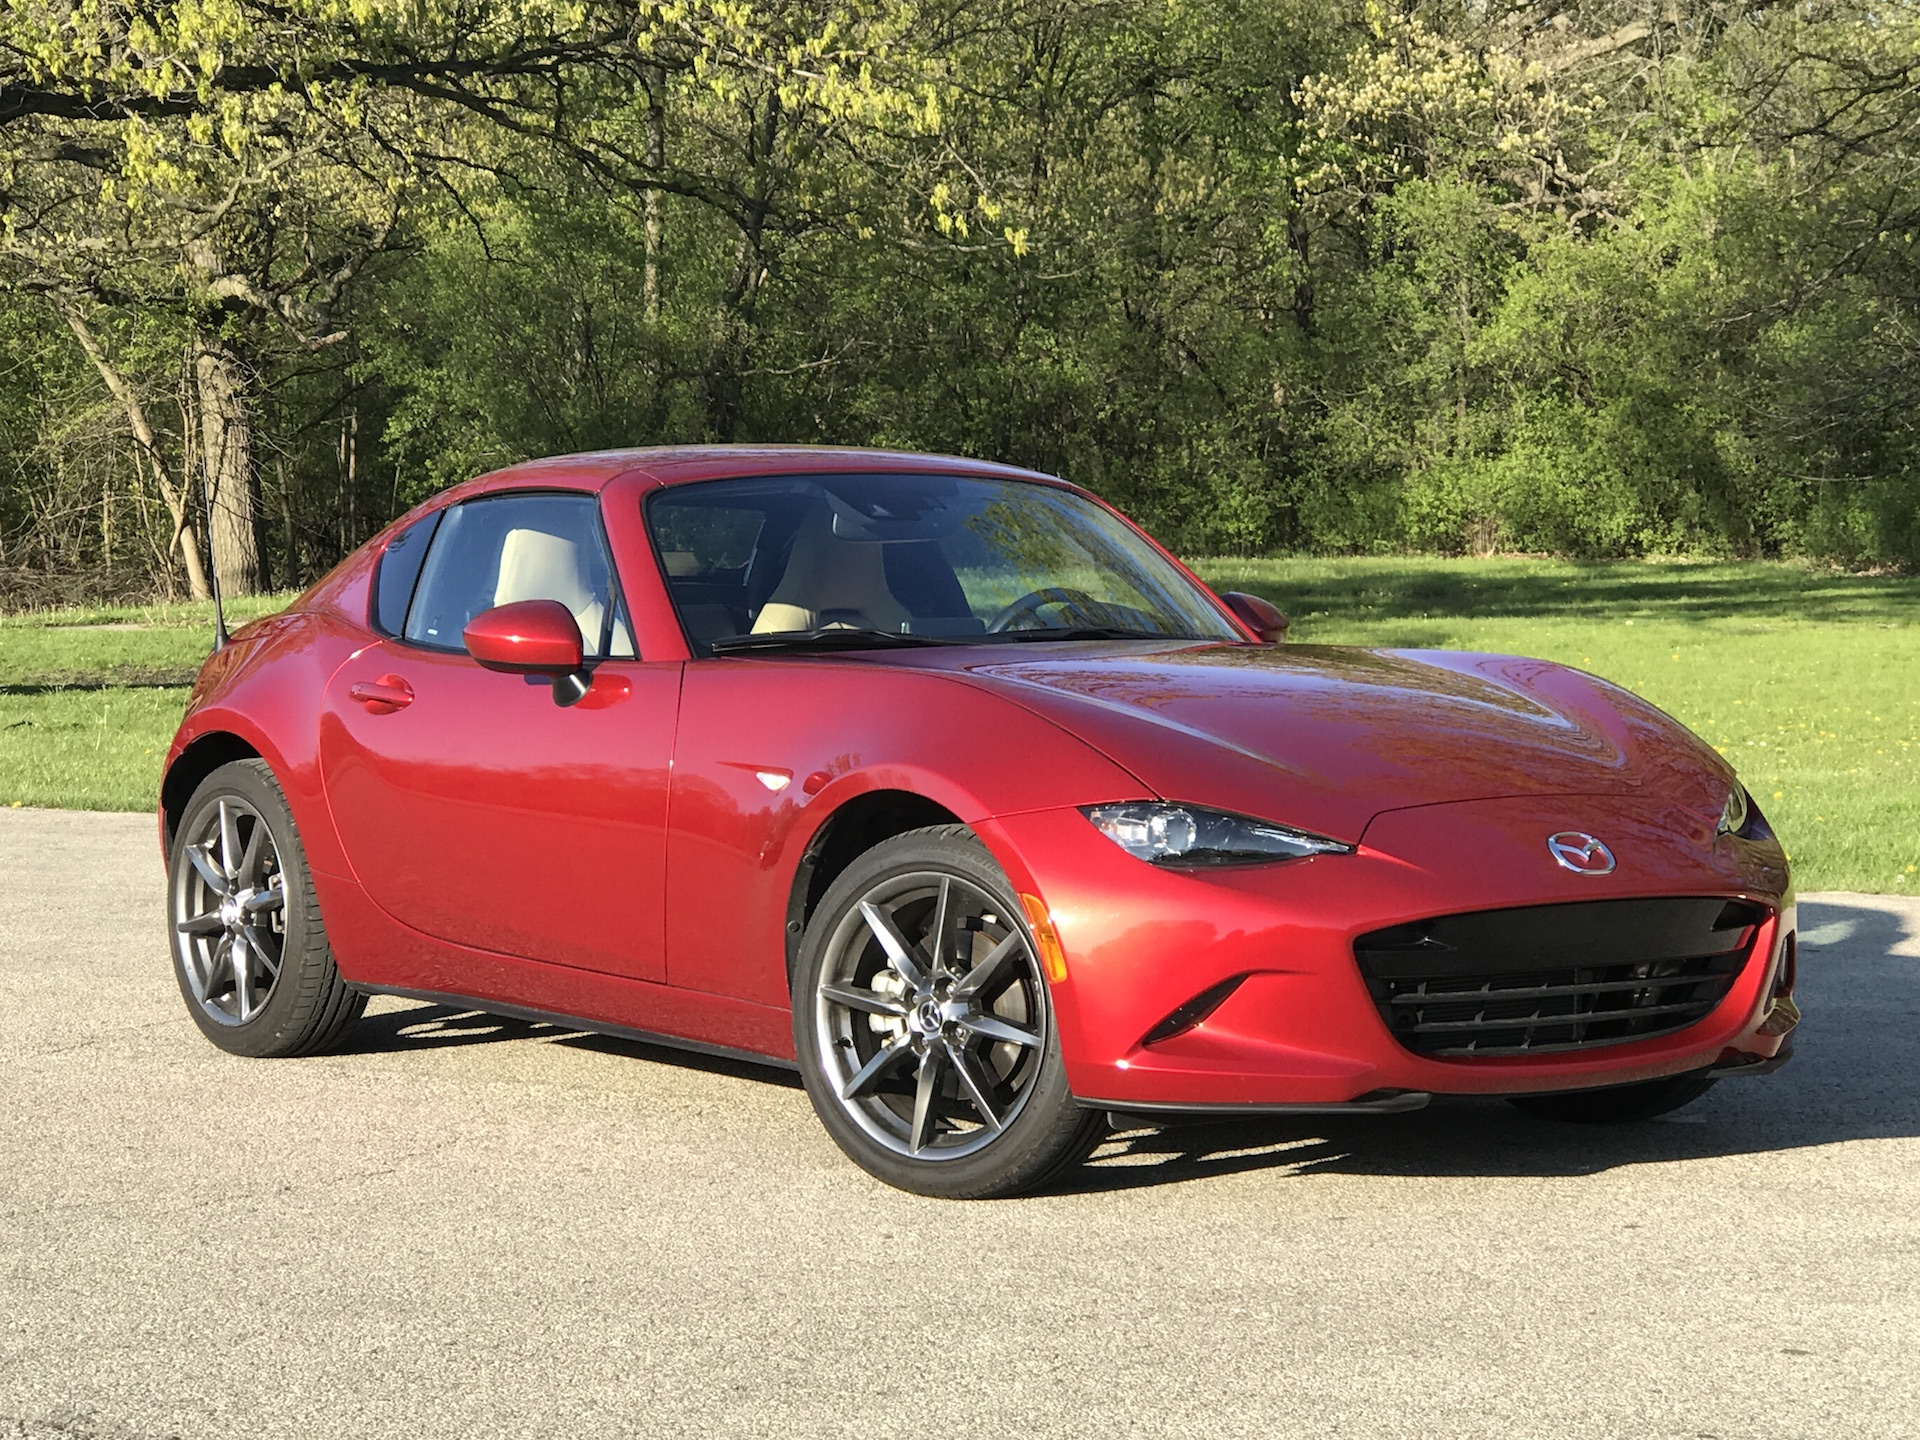 Mazda Mx Miata >> 2017 Mazda MX-5 Miata RF first drive review: the Miata coupe (targa?) we've always wanted